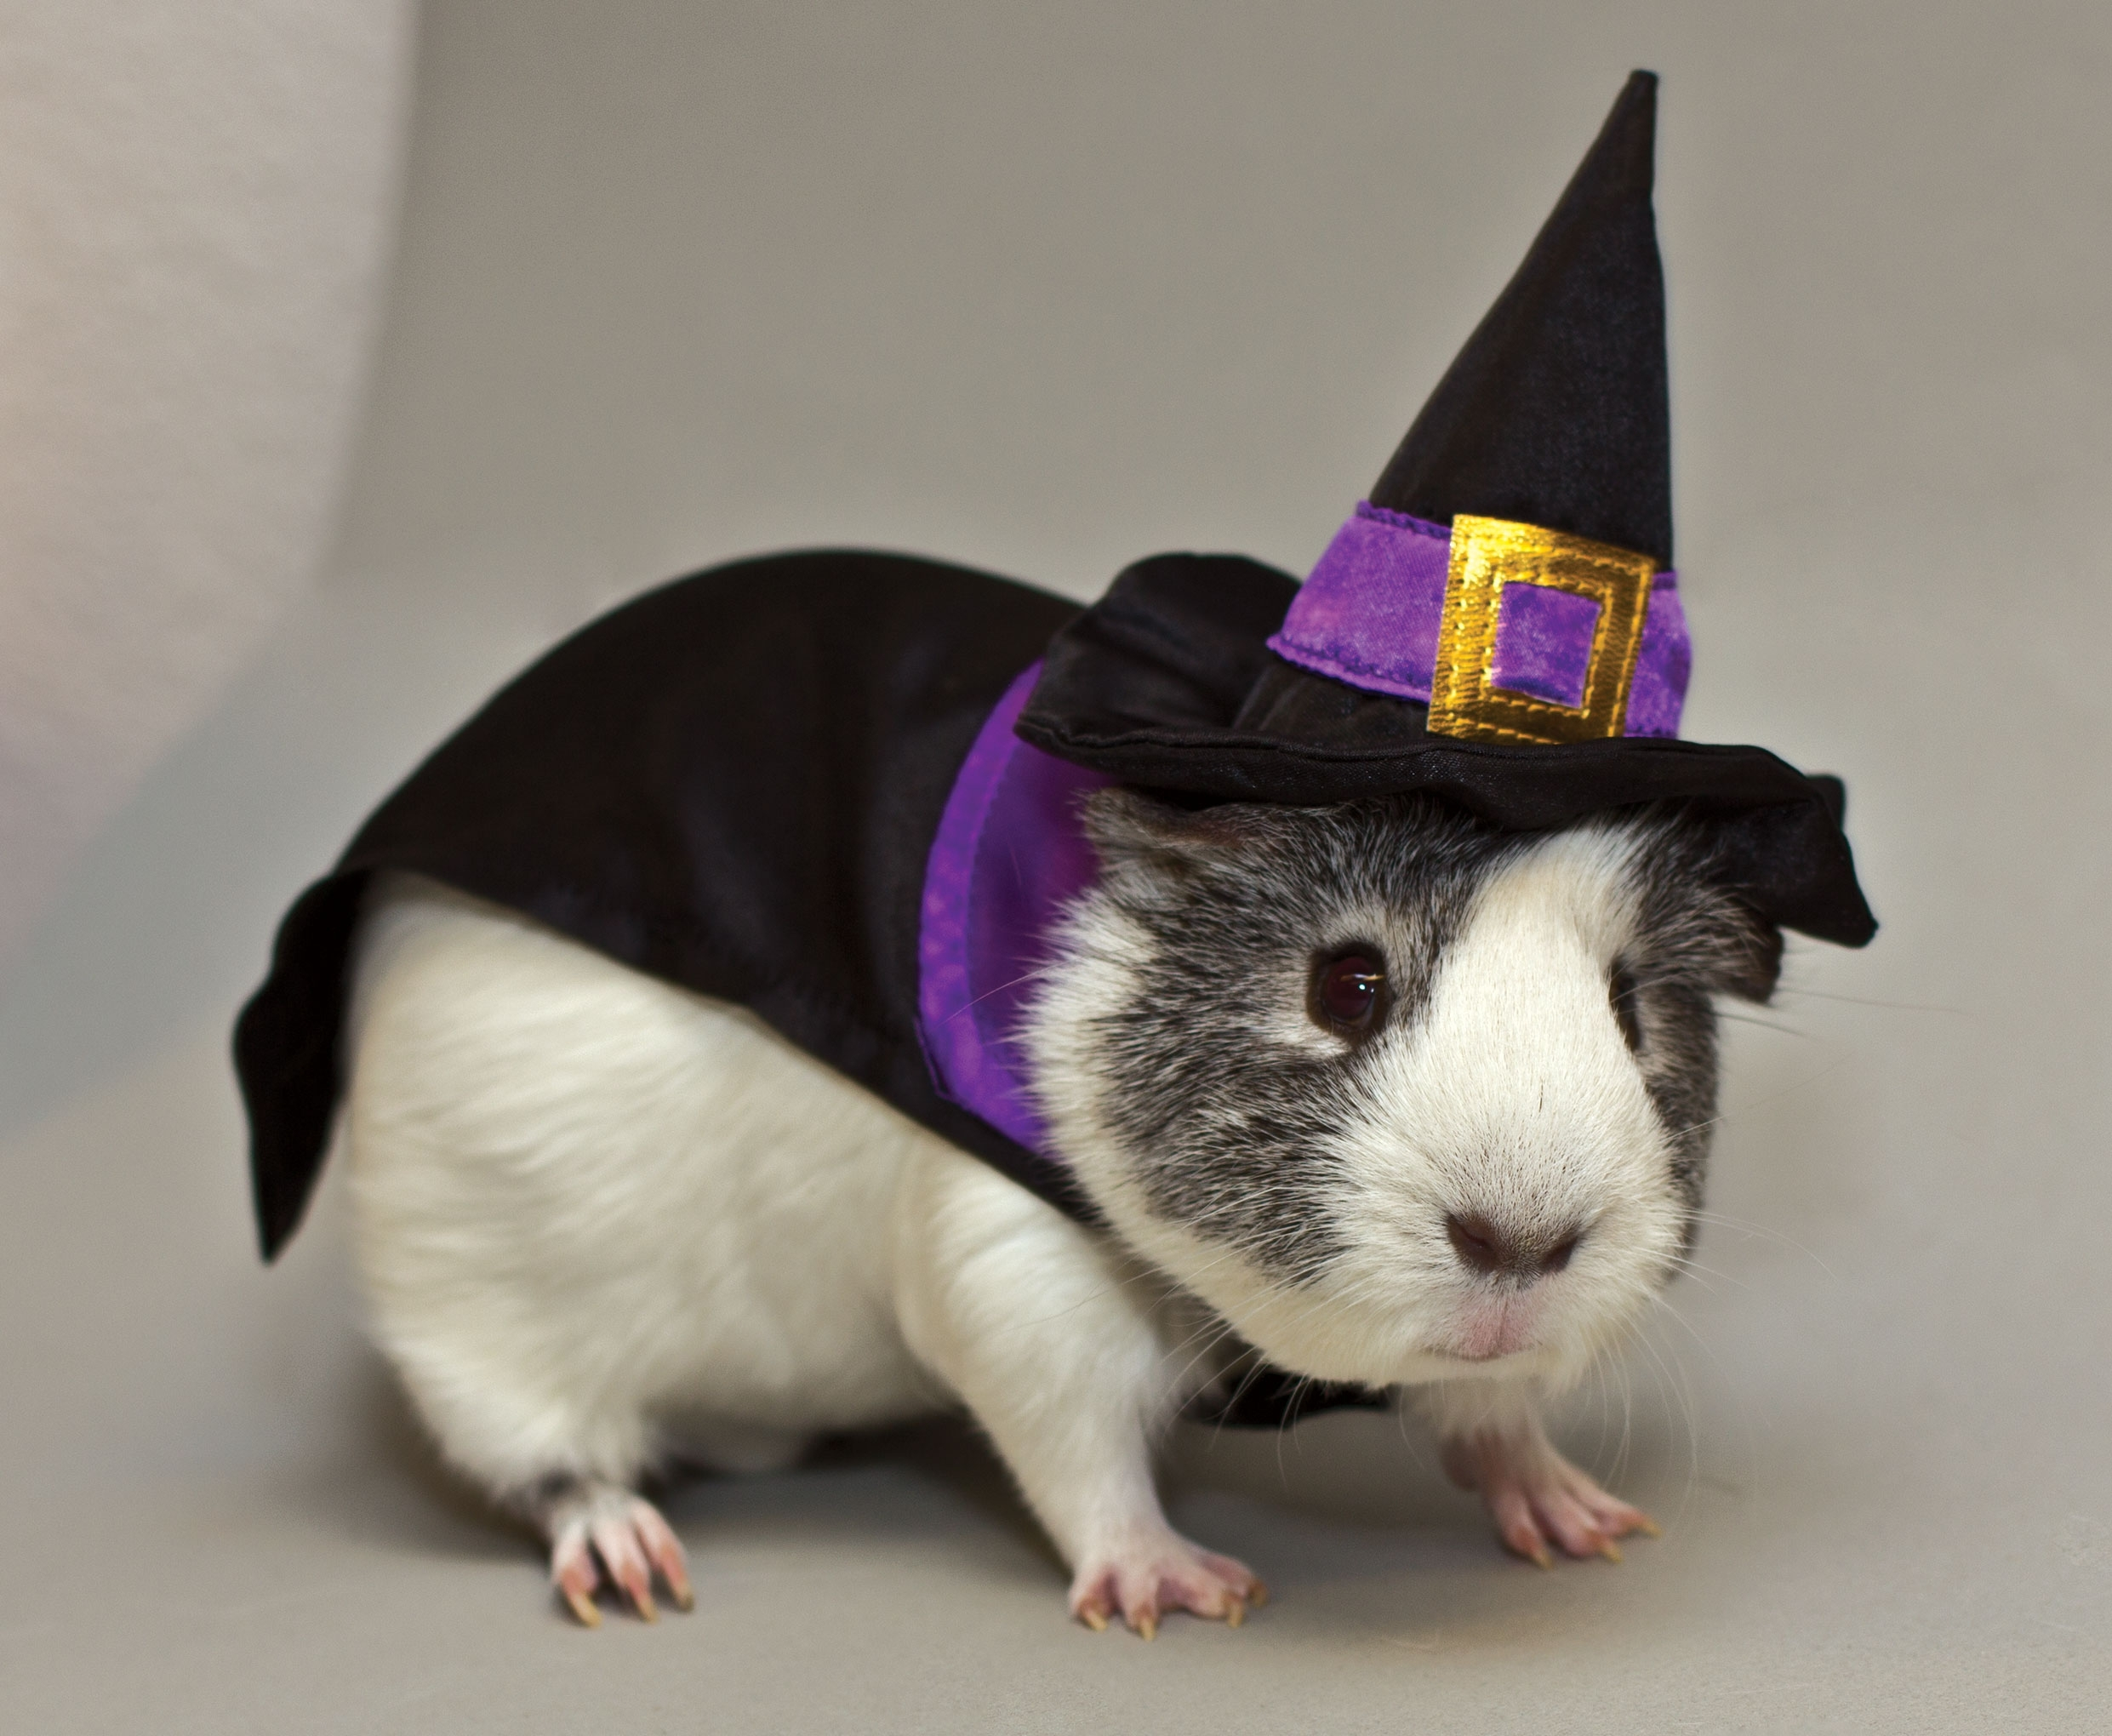 Du flood rien que pour flooder - Page 11 Guinea_Pig_Witch_Costume